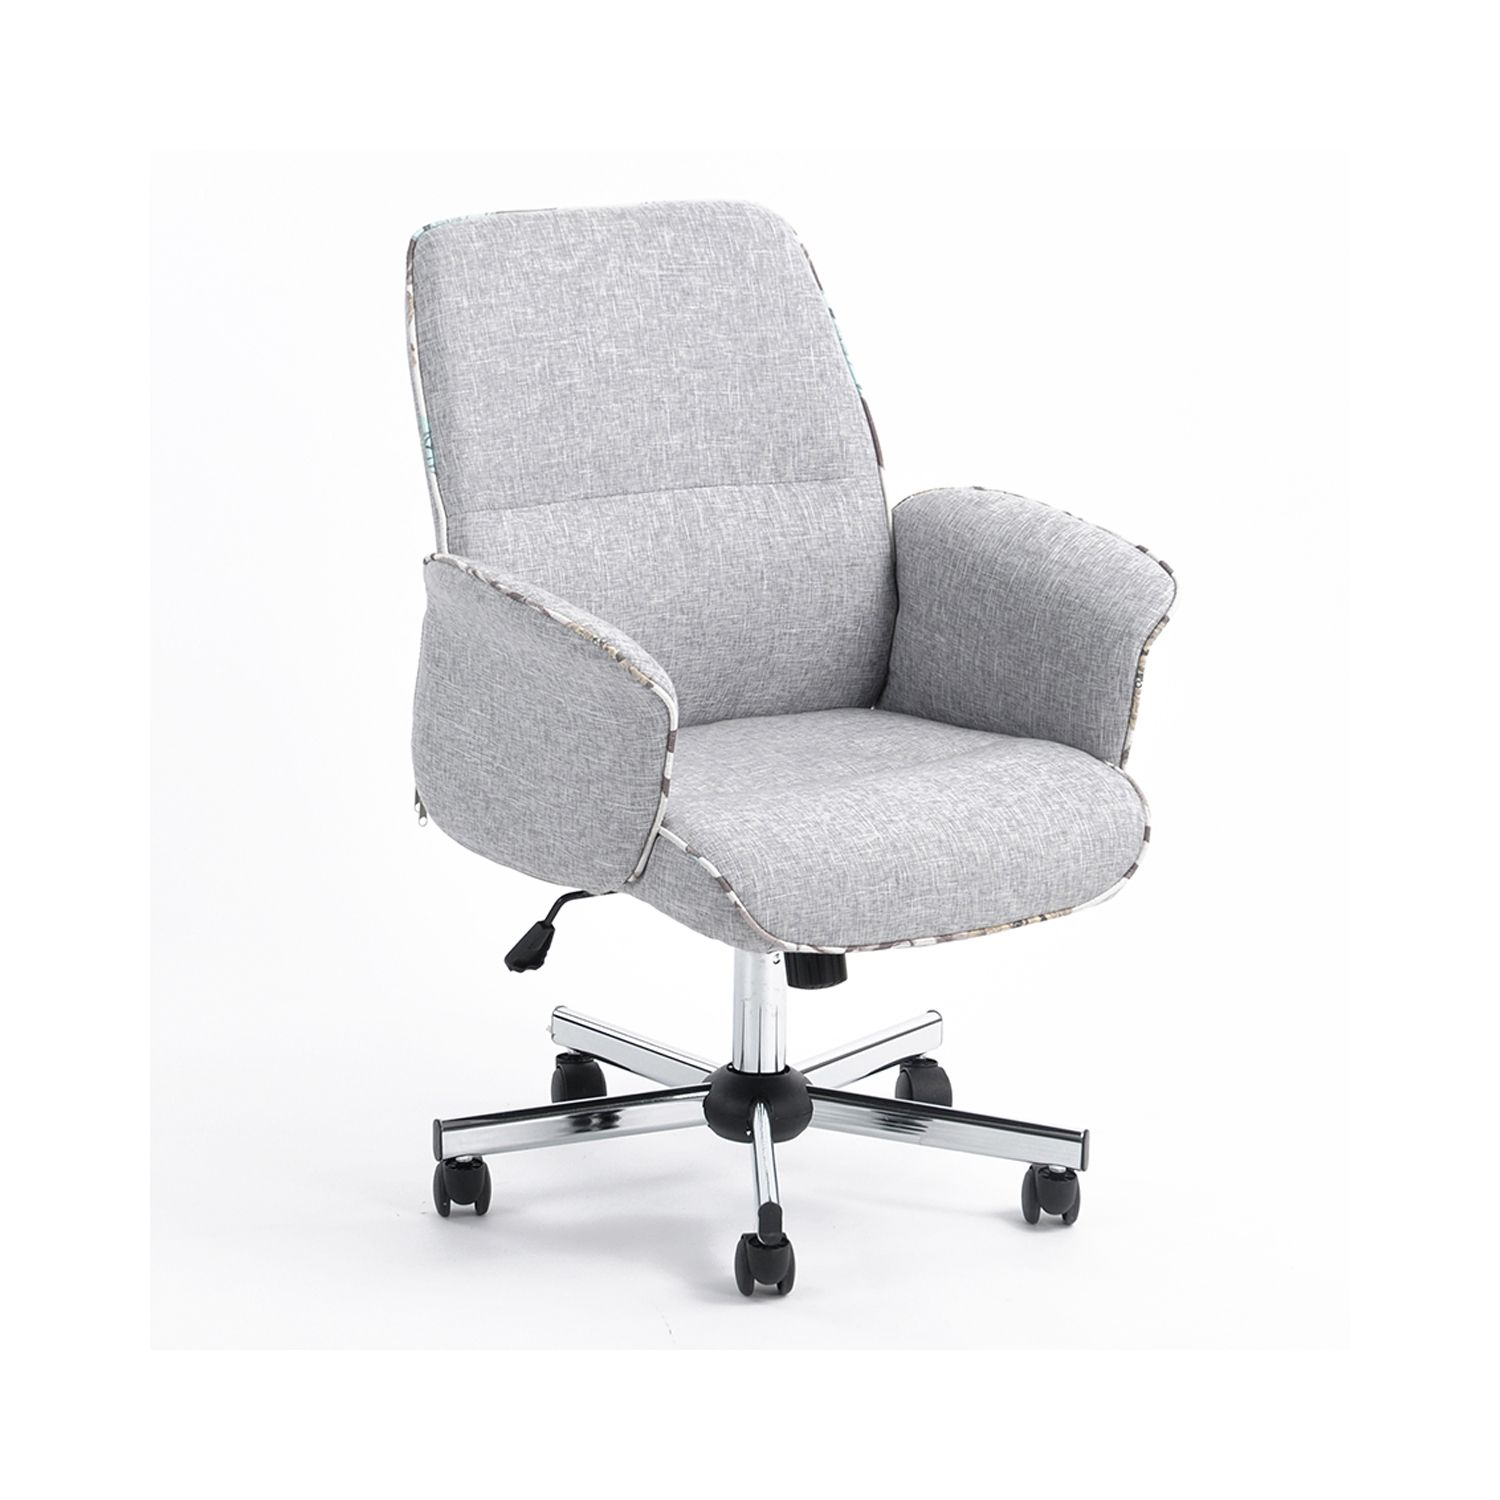 Occasional Chair Upholstered desk chair, Best office